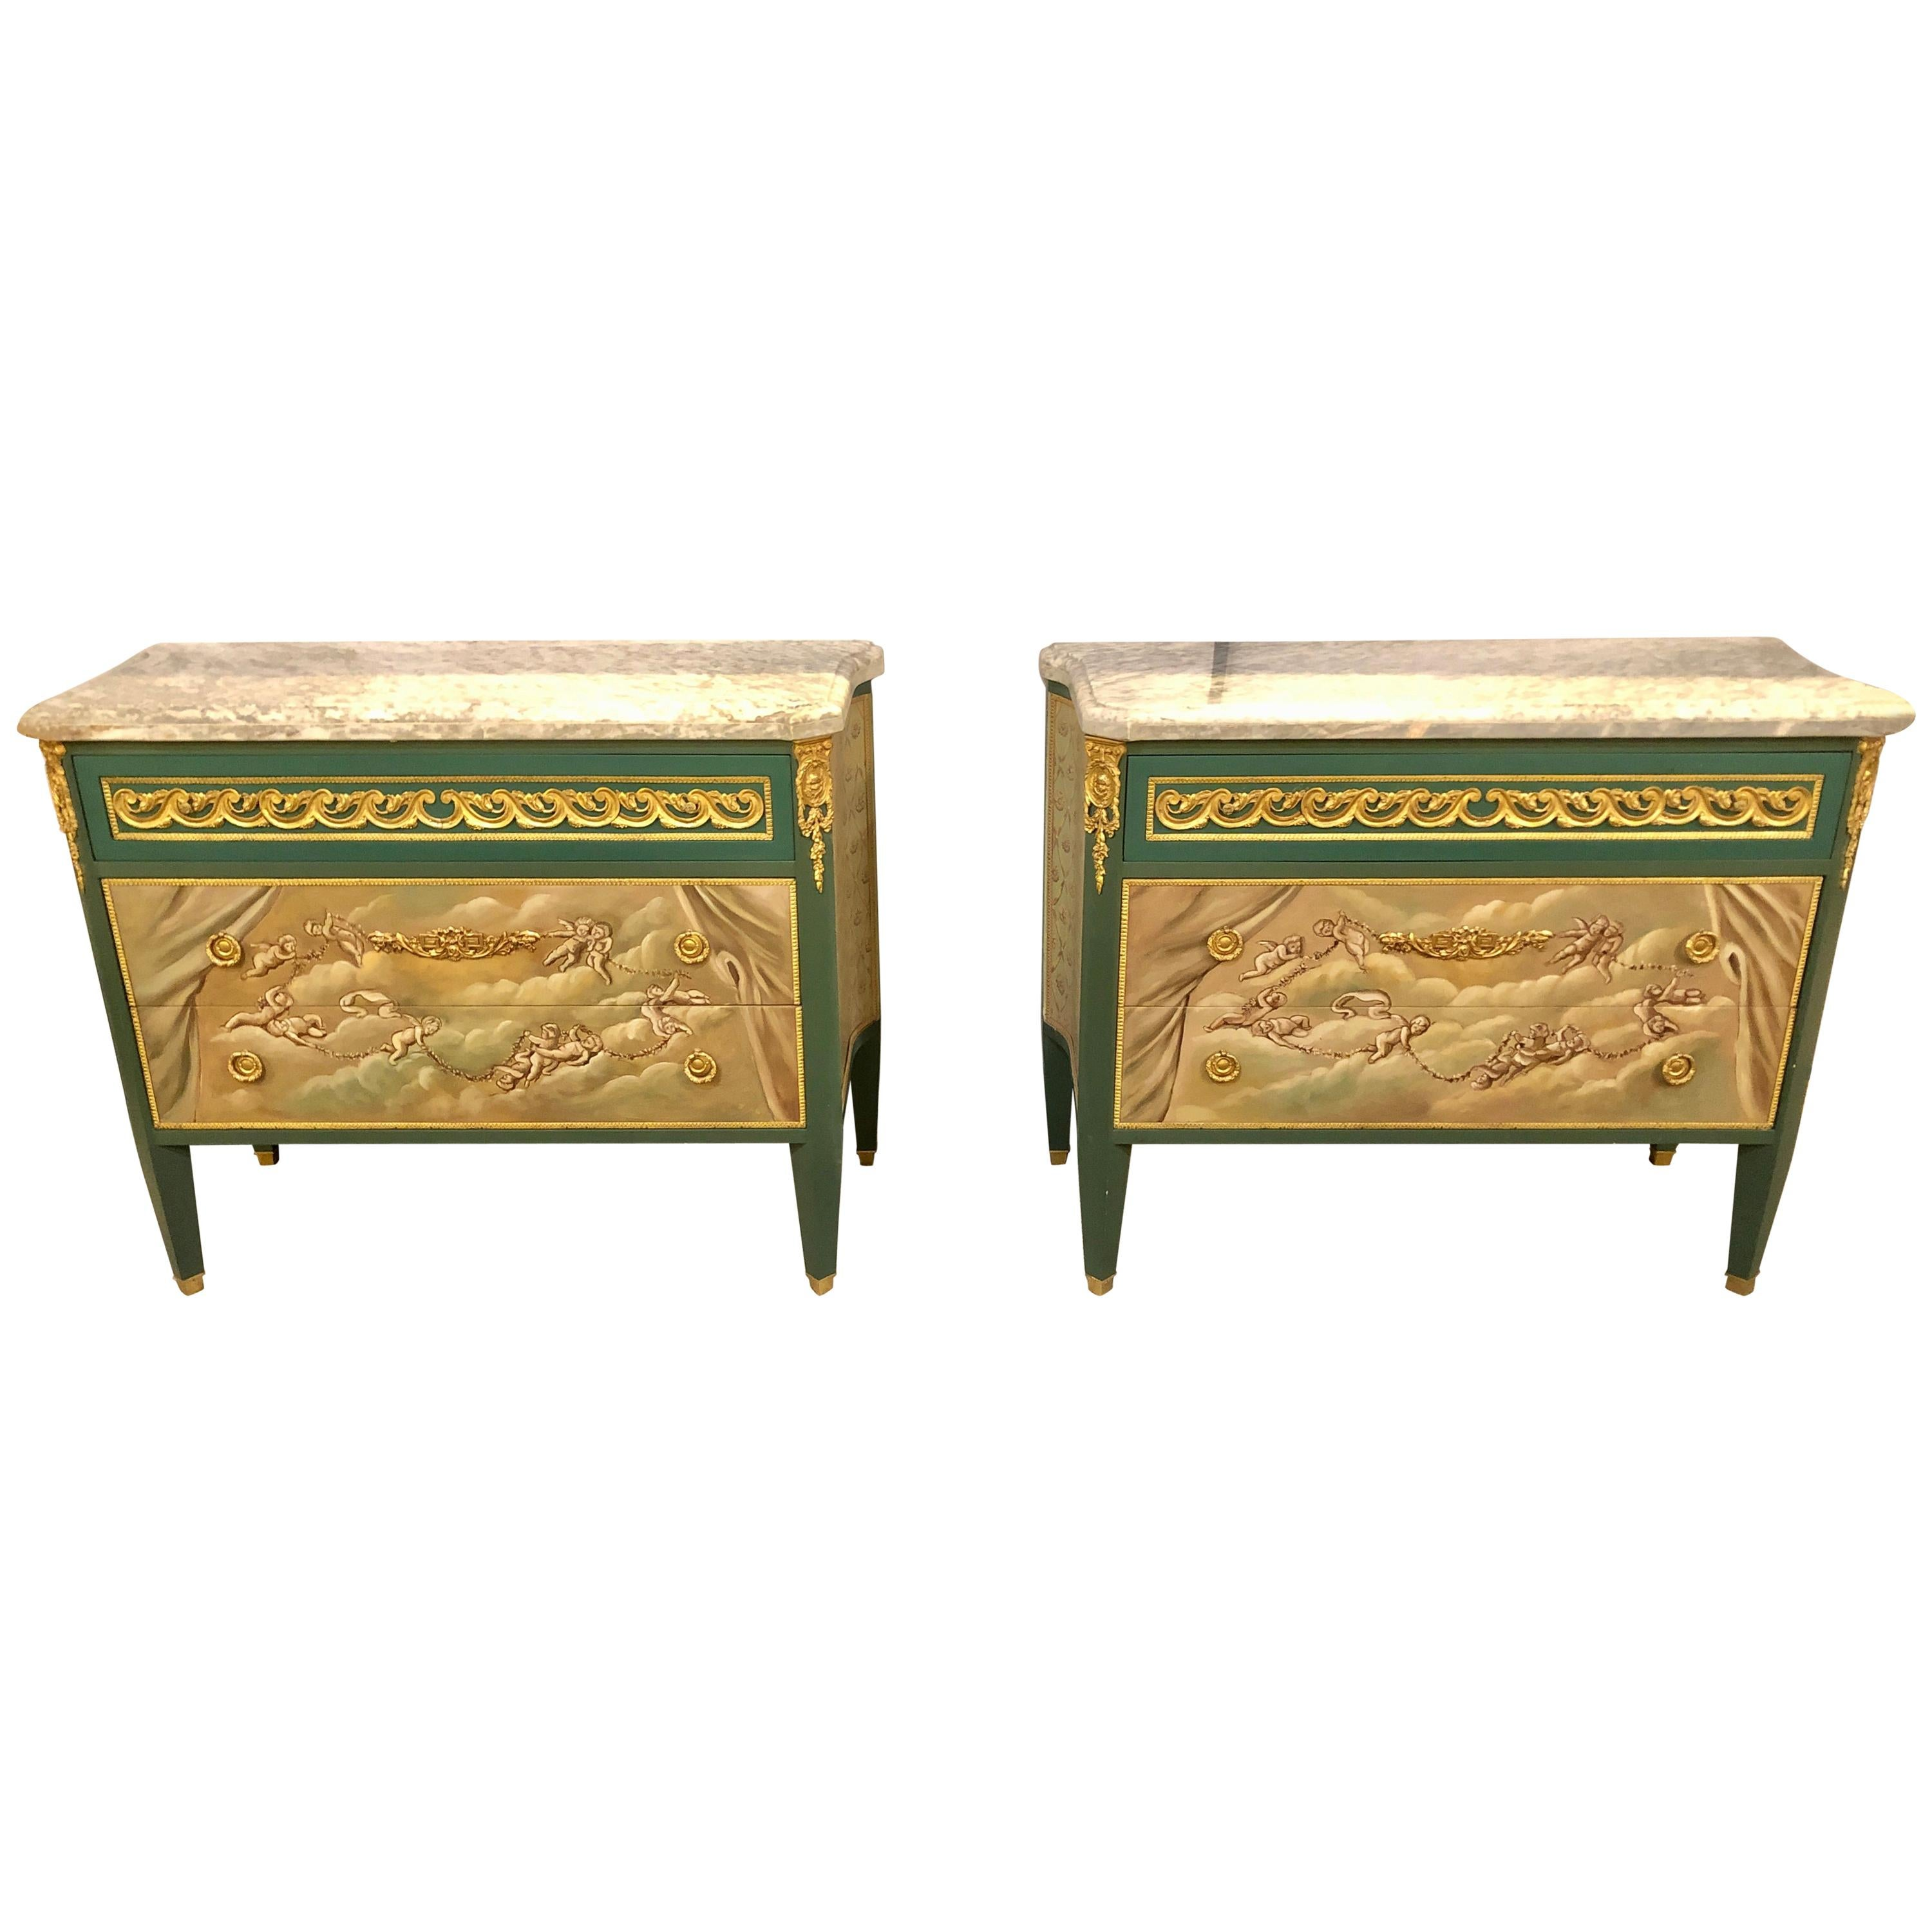 Paint Decorated Hollywood Regency Marble-Top Commodes Manner of M. Jansen, Pair